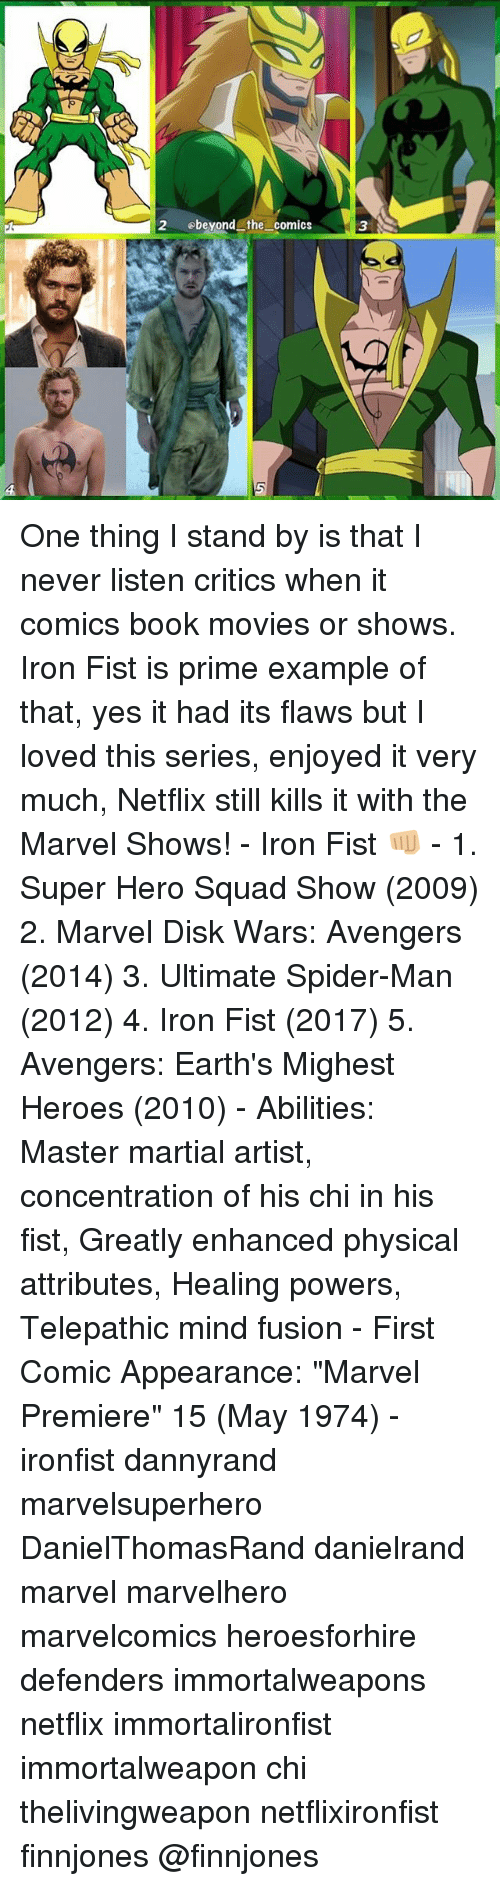 "Memes, 🤖, and Hero: 2 obeyond the comics One thing I stand by is that I never listen critics when it comics book movies or shows. Iron Fist is prime example of that, yes it had its flaws but I loved this series, enjoyed it very much, Netflix still kills it with the Marvel Shows! - Iron Fist 👊🏼 - 1. Super Hero Squad Show (2009) 2. Marvel Disk Wars: Avengers (2014) 3. Ultimate Spider-Man (2012) 4. Iron Fist (2017) 5. Avengers: Earth's Mighest Heroes (2010) - Abilities: Master martial artist, concentration of his chi in his fist, Greatly enhanced physical attributes, Healing powers, Telepathic mind fusion - First Comic Appearance: ""Marvel Premiere"" 15 (May 1974) - ironfist dannyrand marvelsuperhero DanielThomasRand danielrand marvel marvelhero marvelcomics heroesforhire defenders immortalweapons netflix immortalironfist immortalweapon chi thelivingweapon netflixironfist finnjones @finnjones"